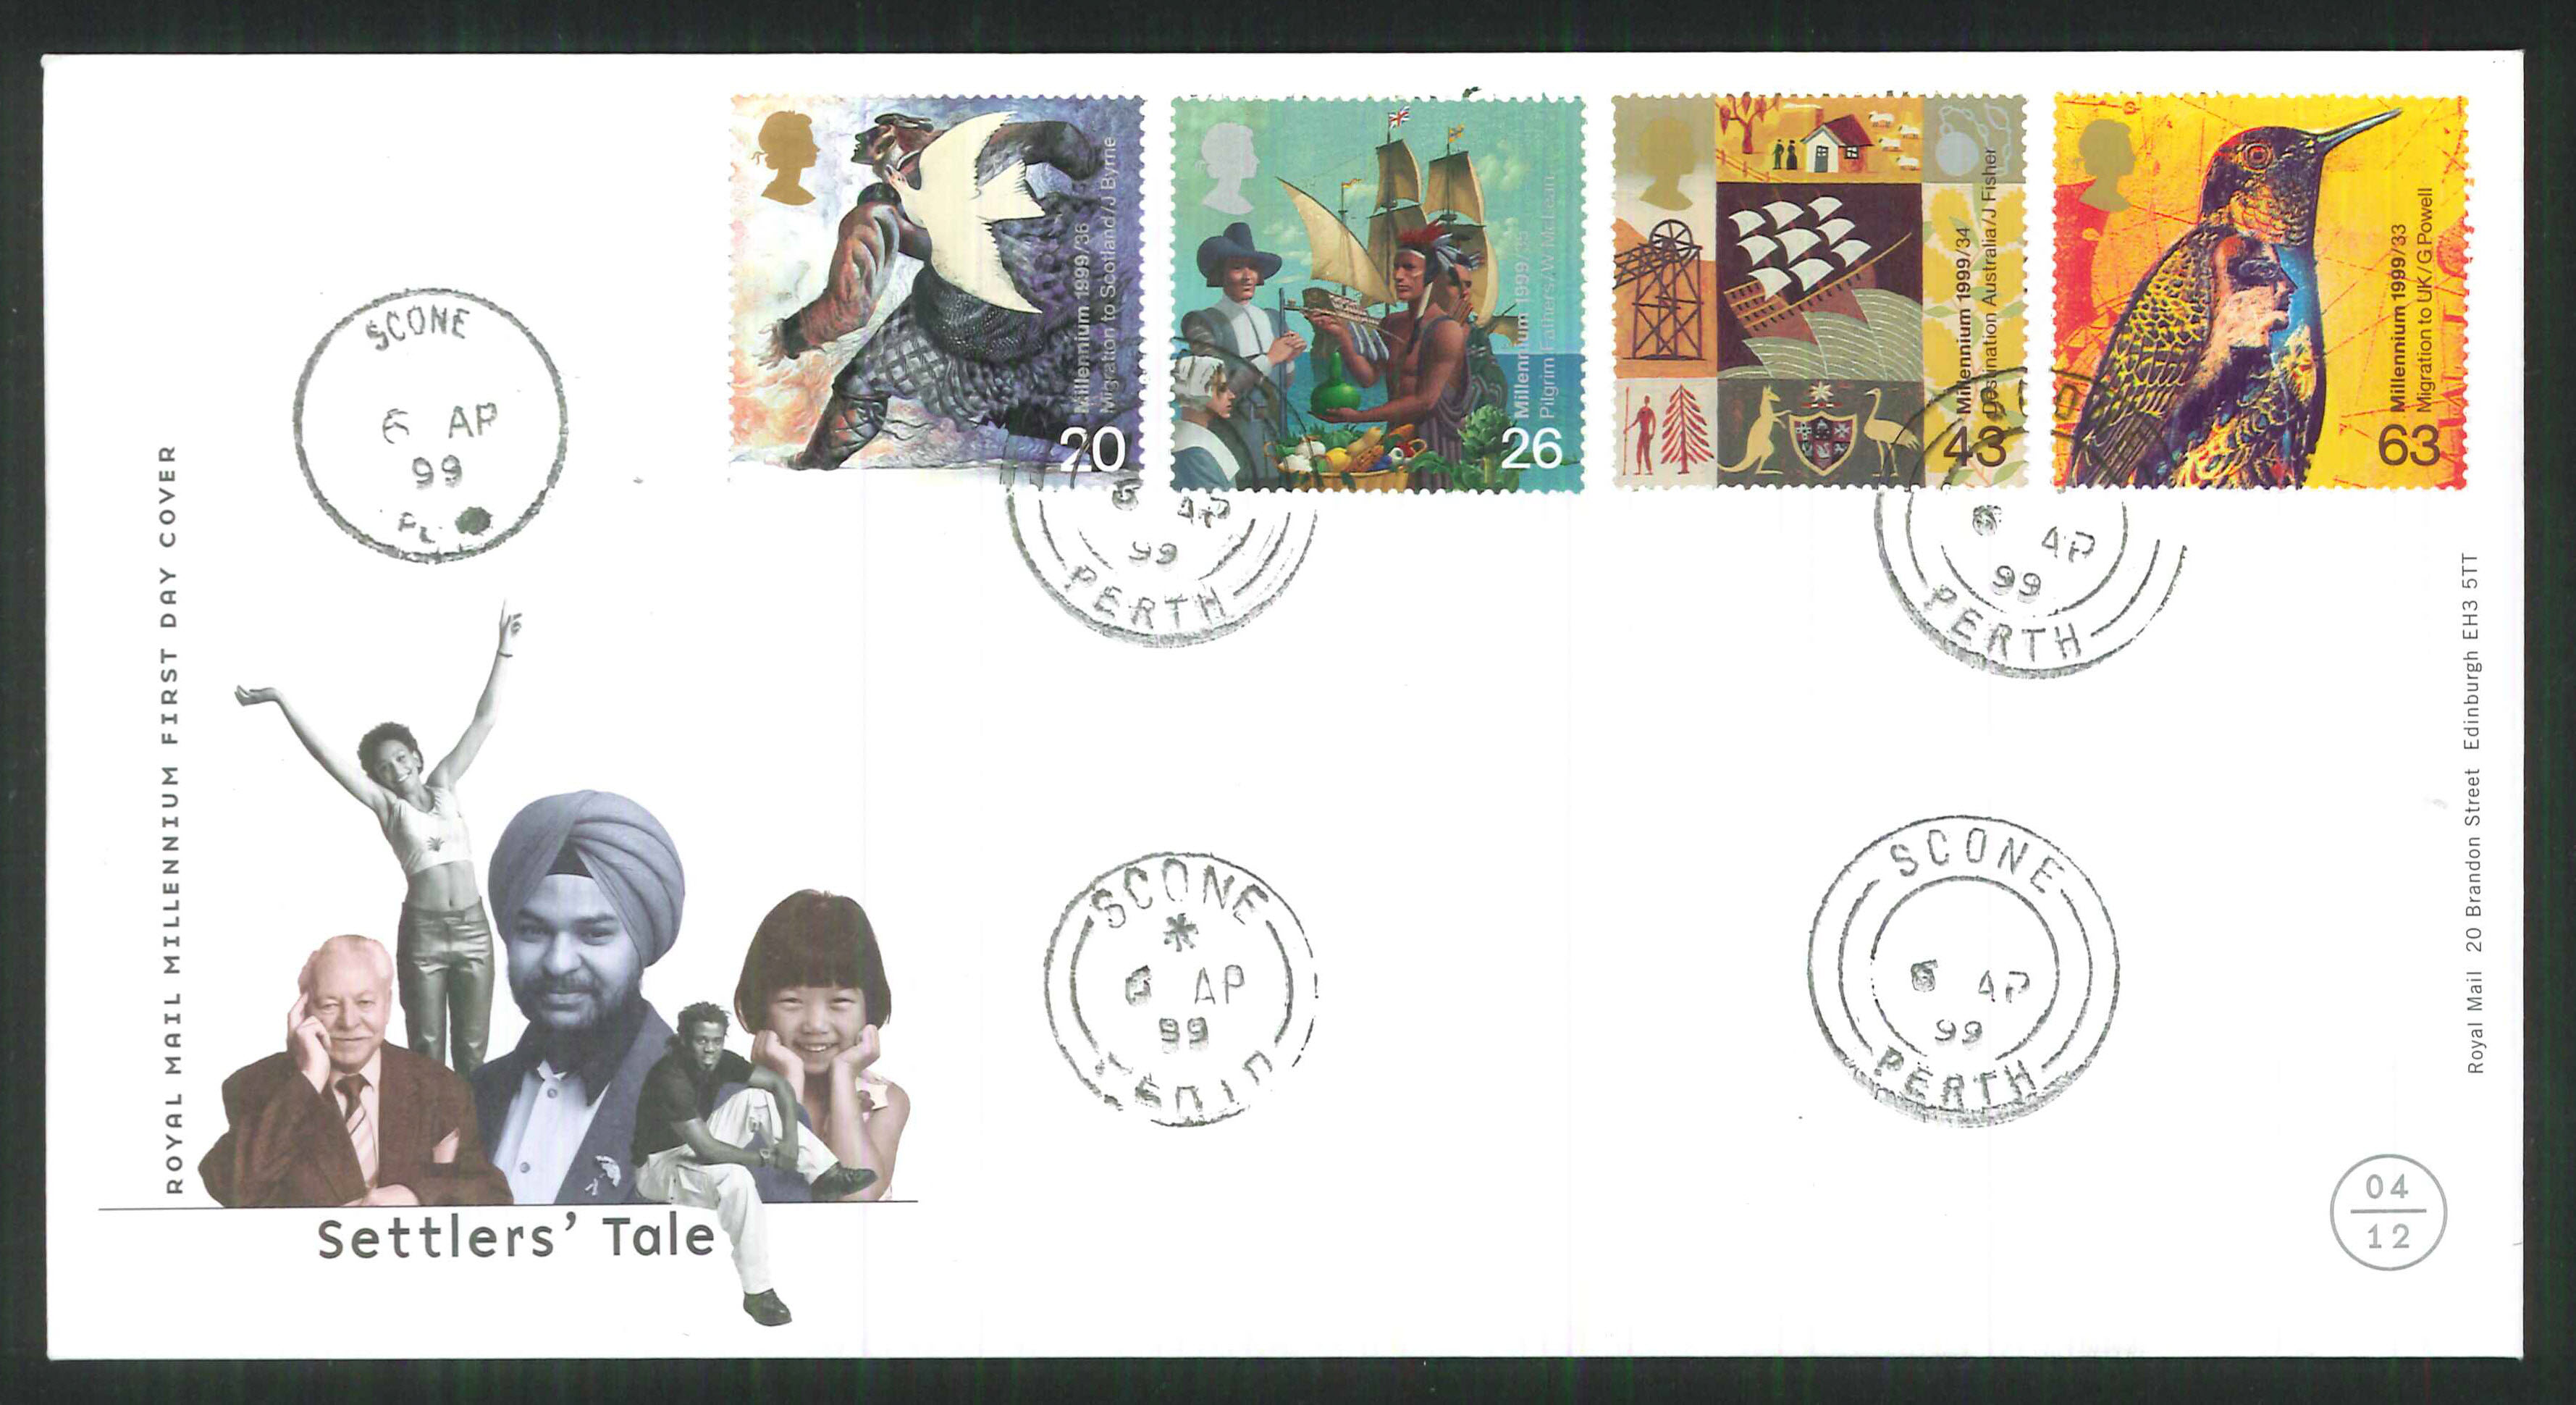 1999 - Settlers' Tale First Day Cover - Scone Perth C D S Postmark